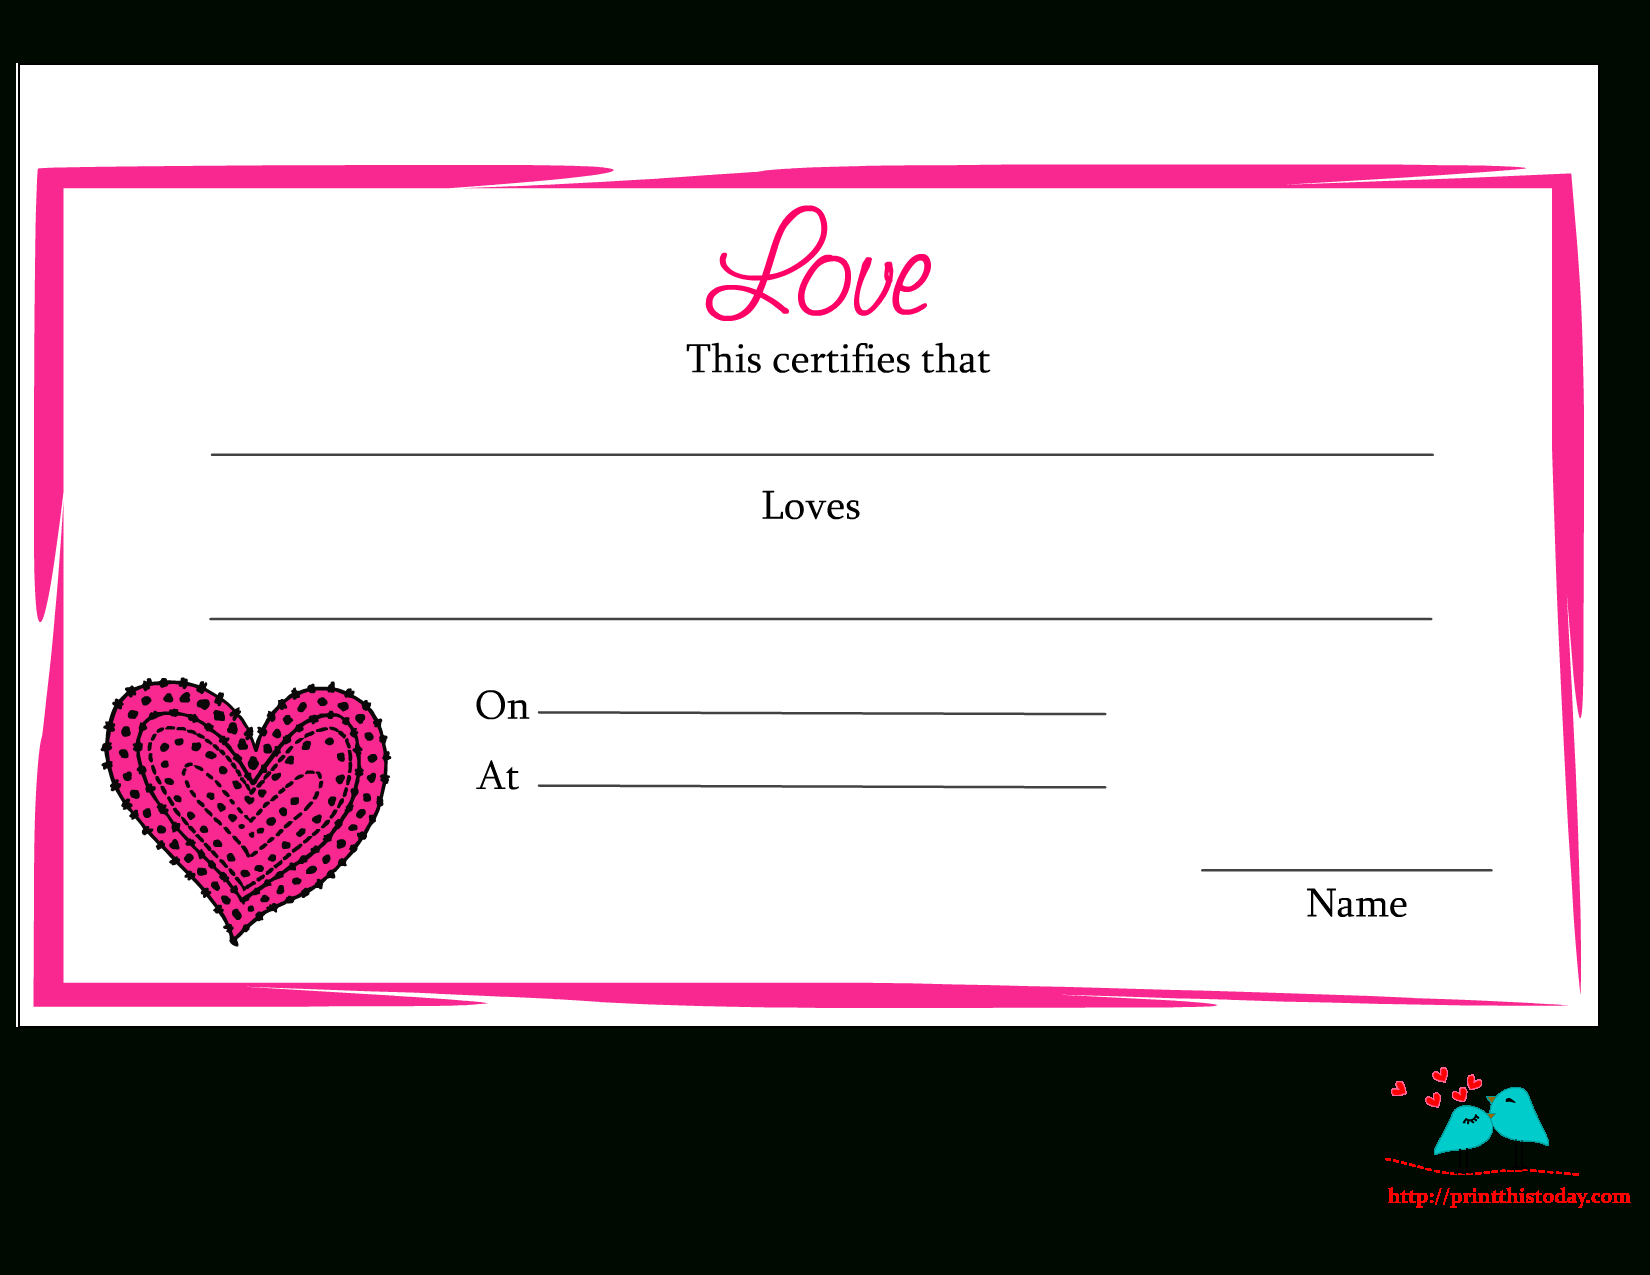 Free Printable Love Certificate   For The Holidays   Free, Love Is - Free Printable Love Certificates For Him